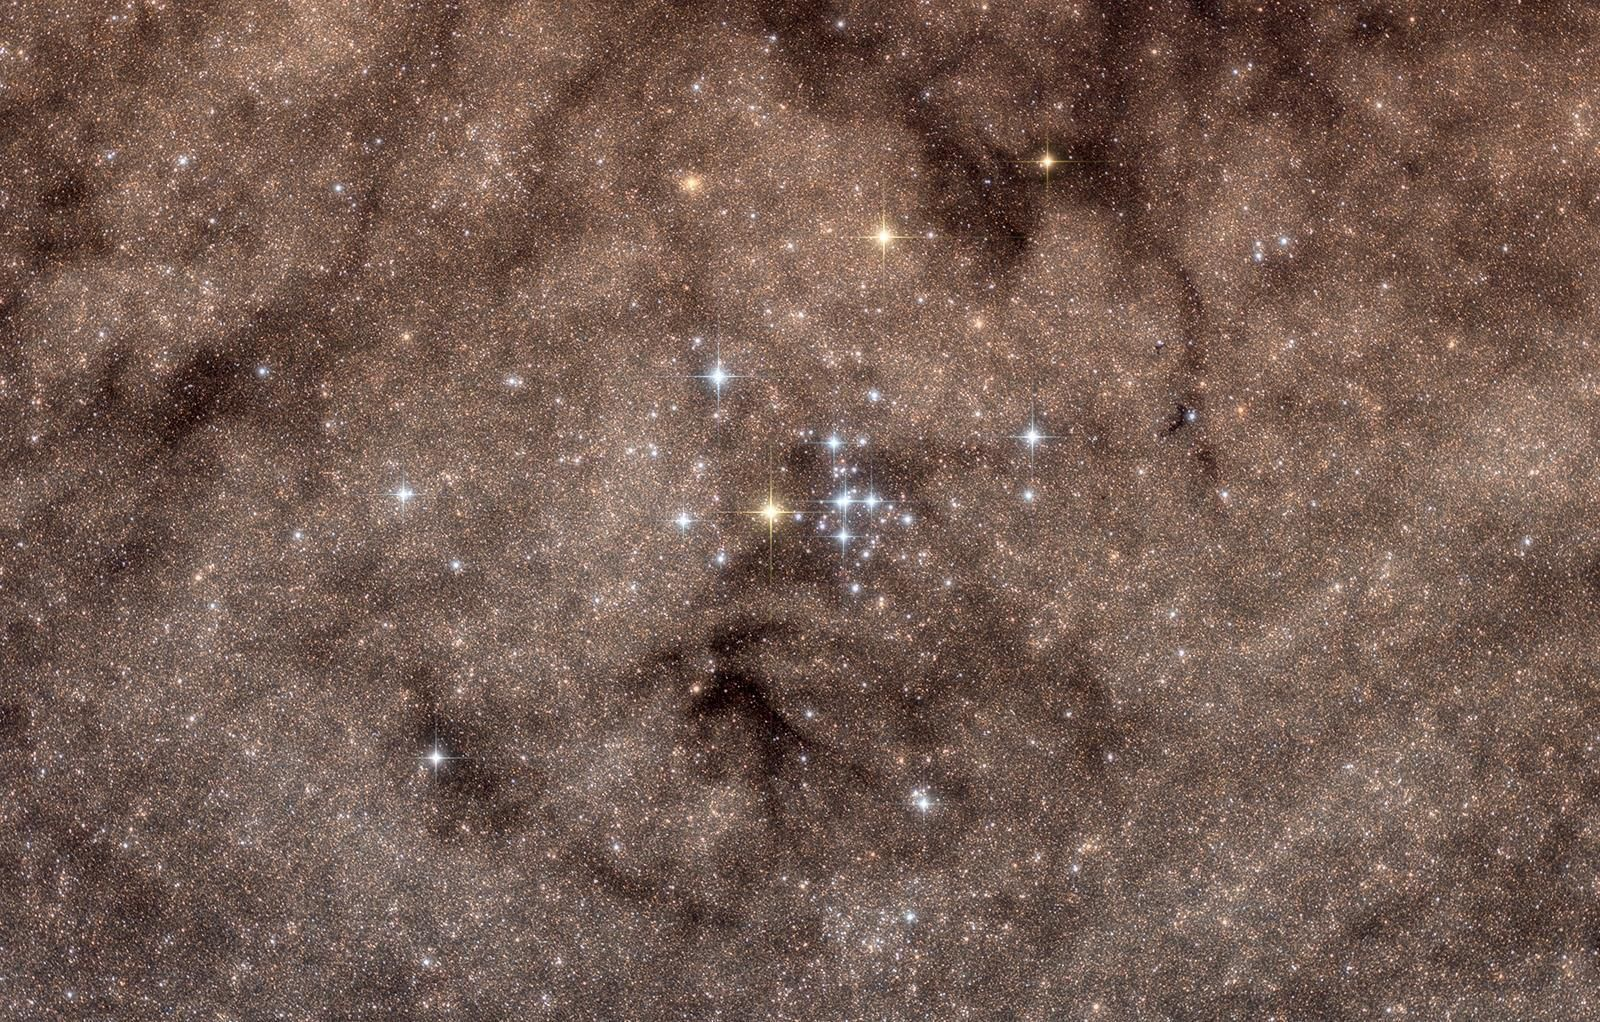 M7 - The Ptolemy Cluster